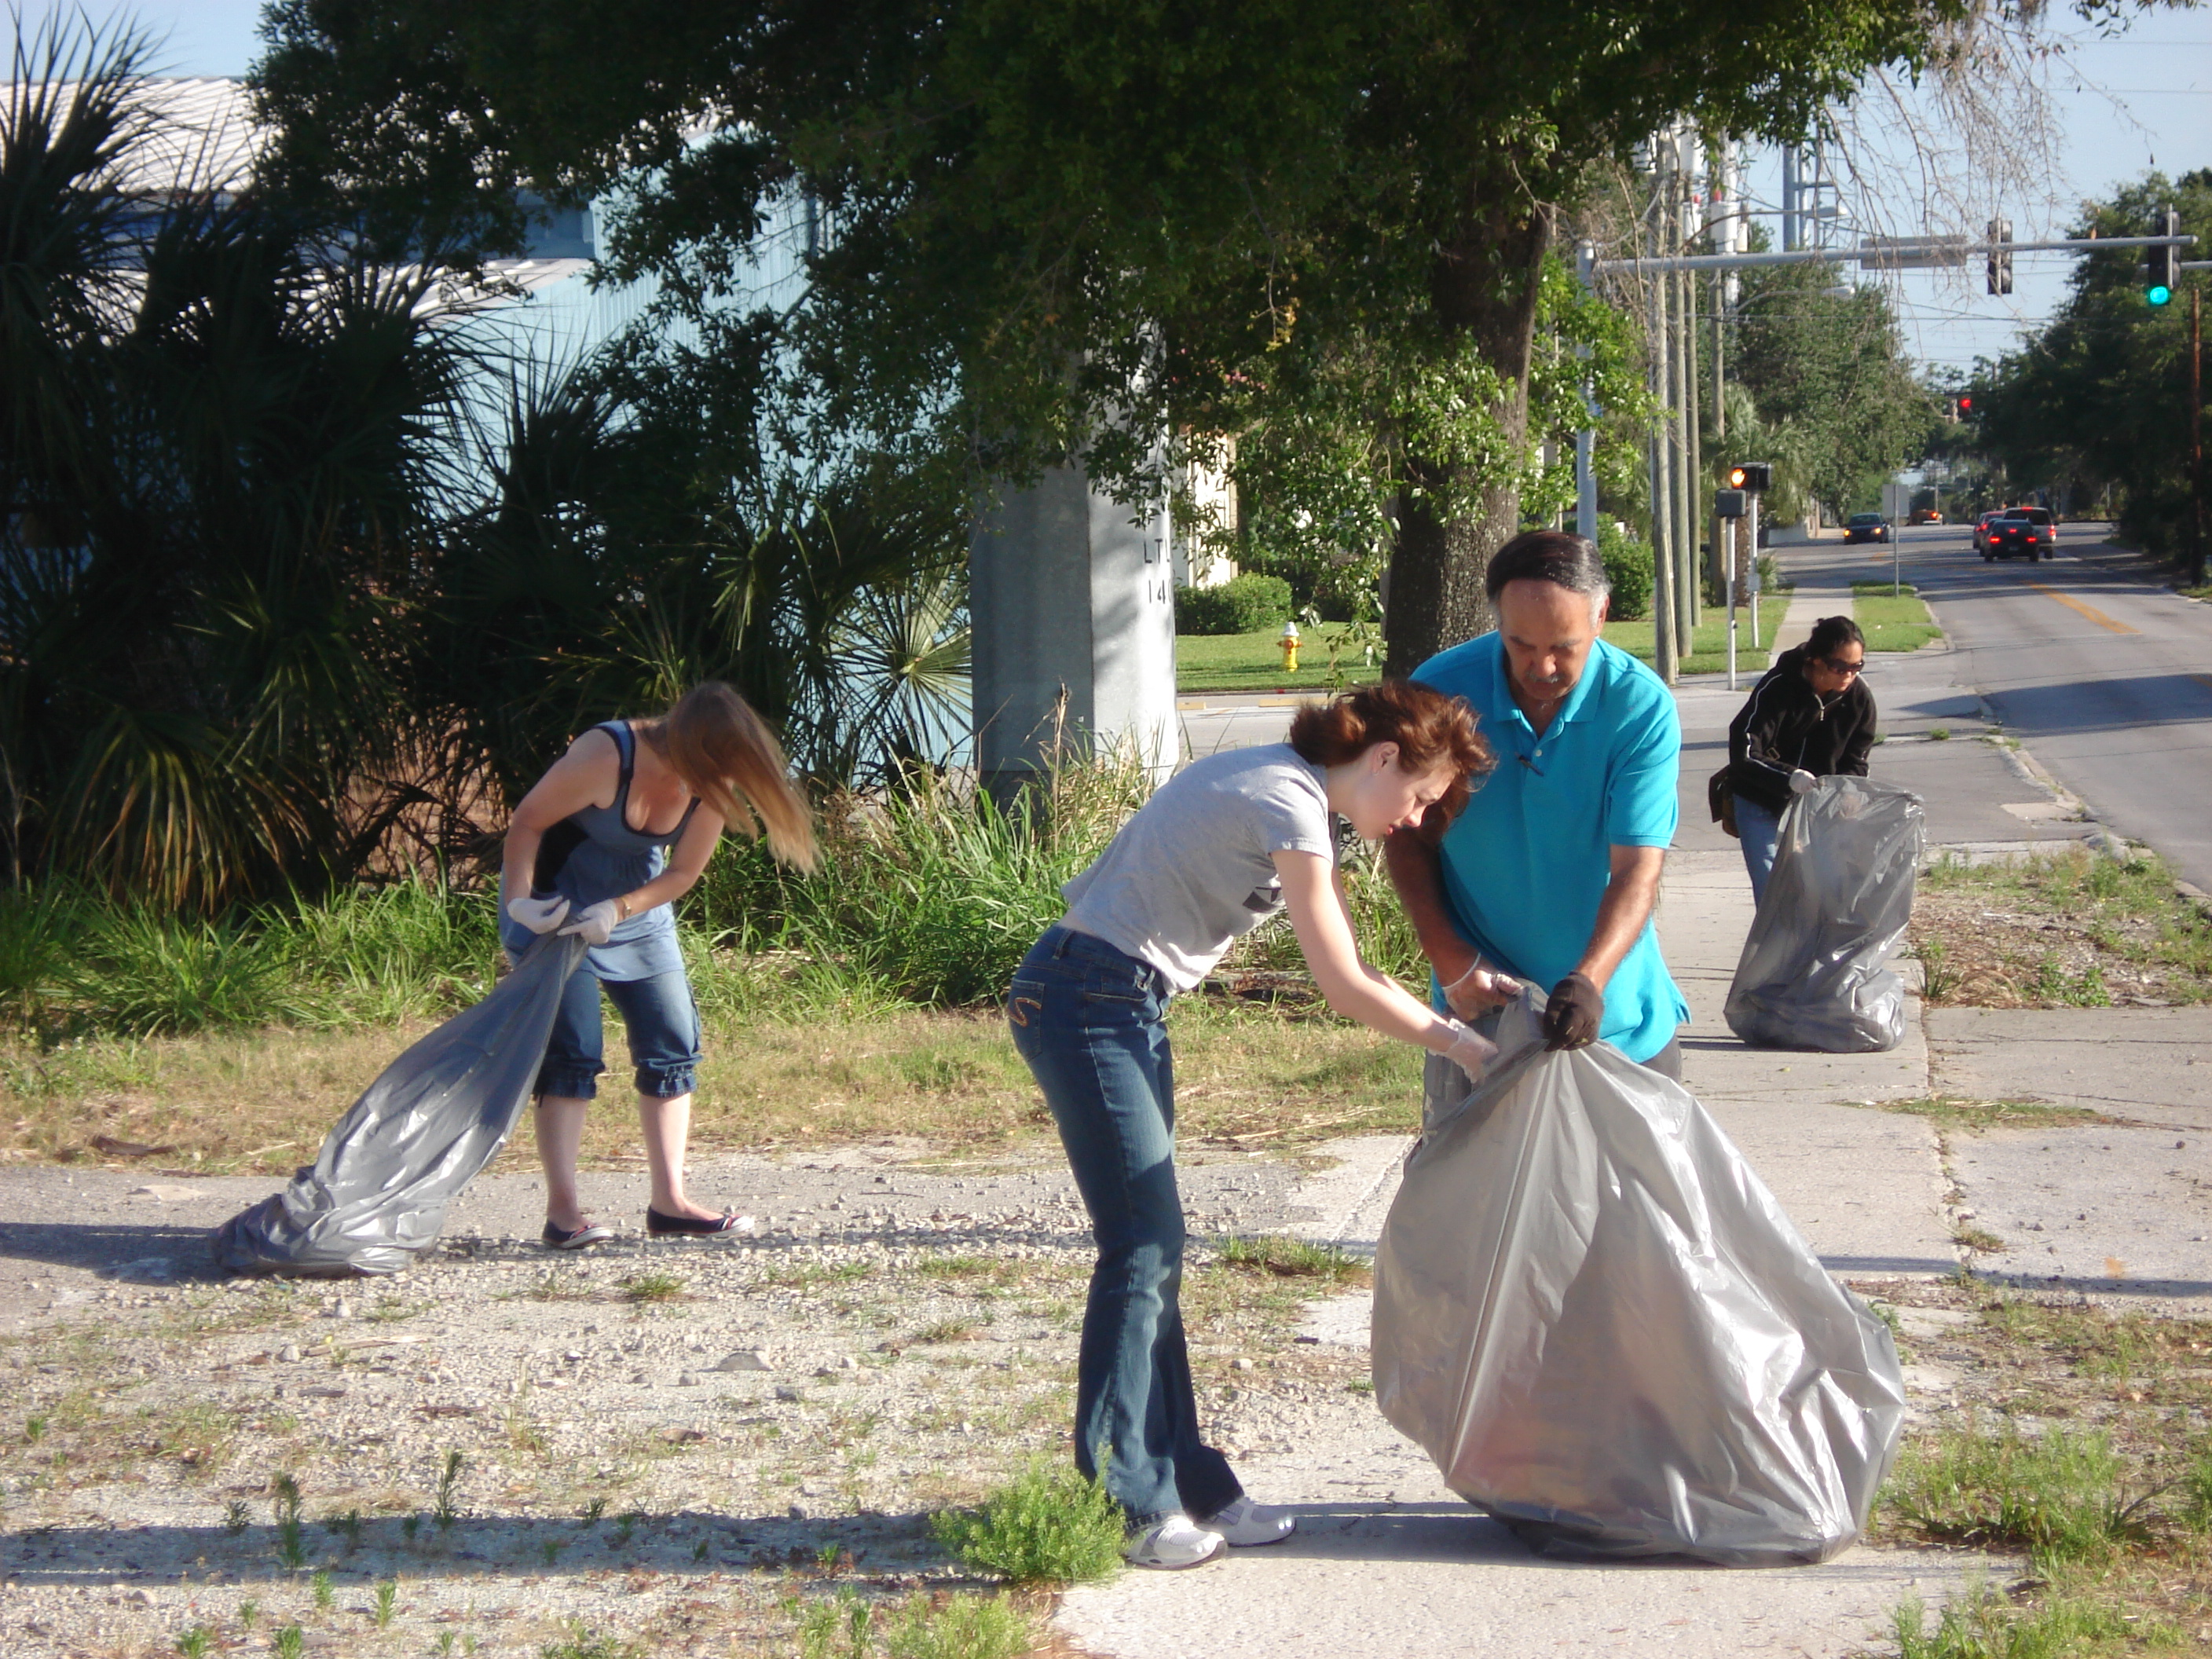 Two Young Women Picking Up Trash